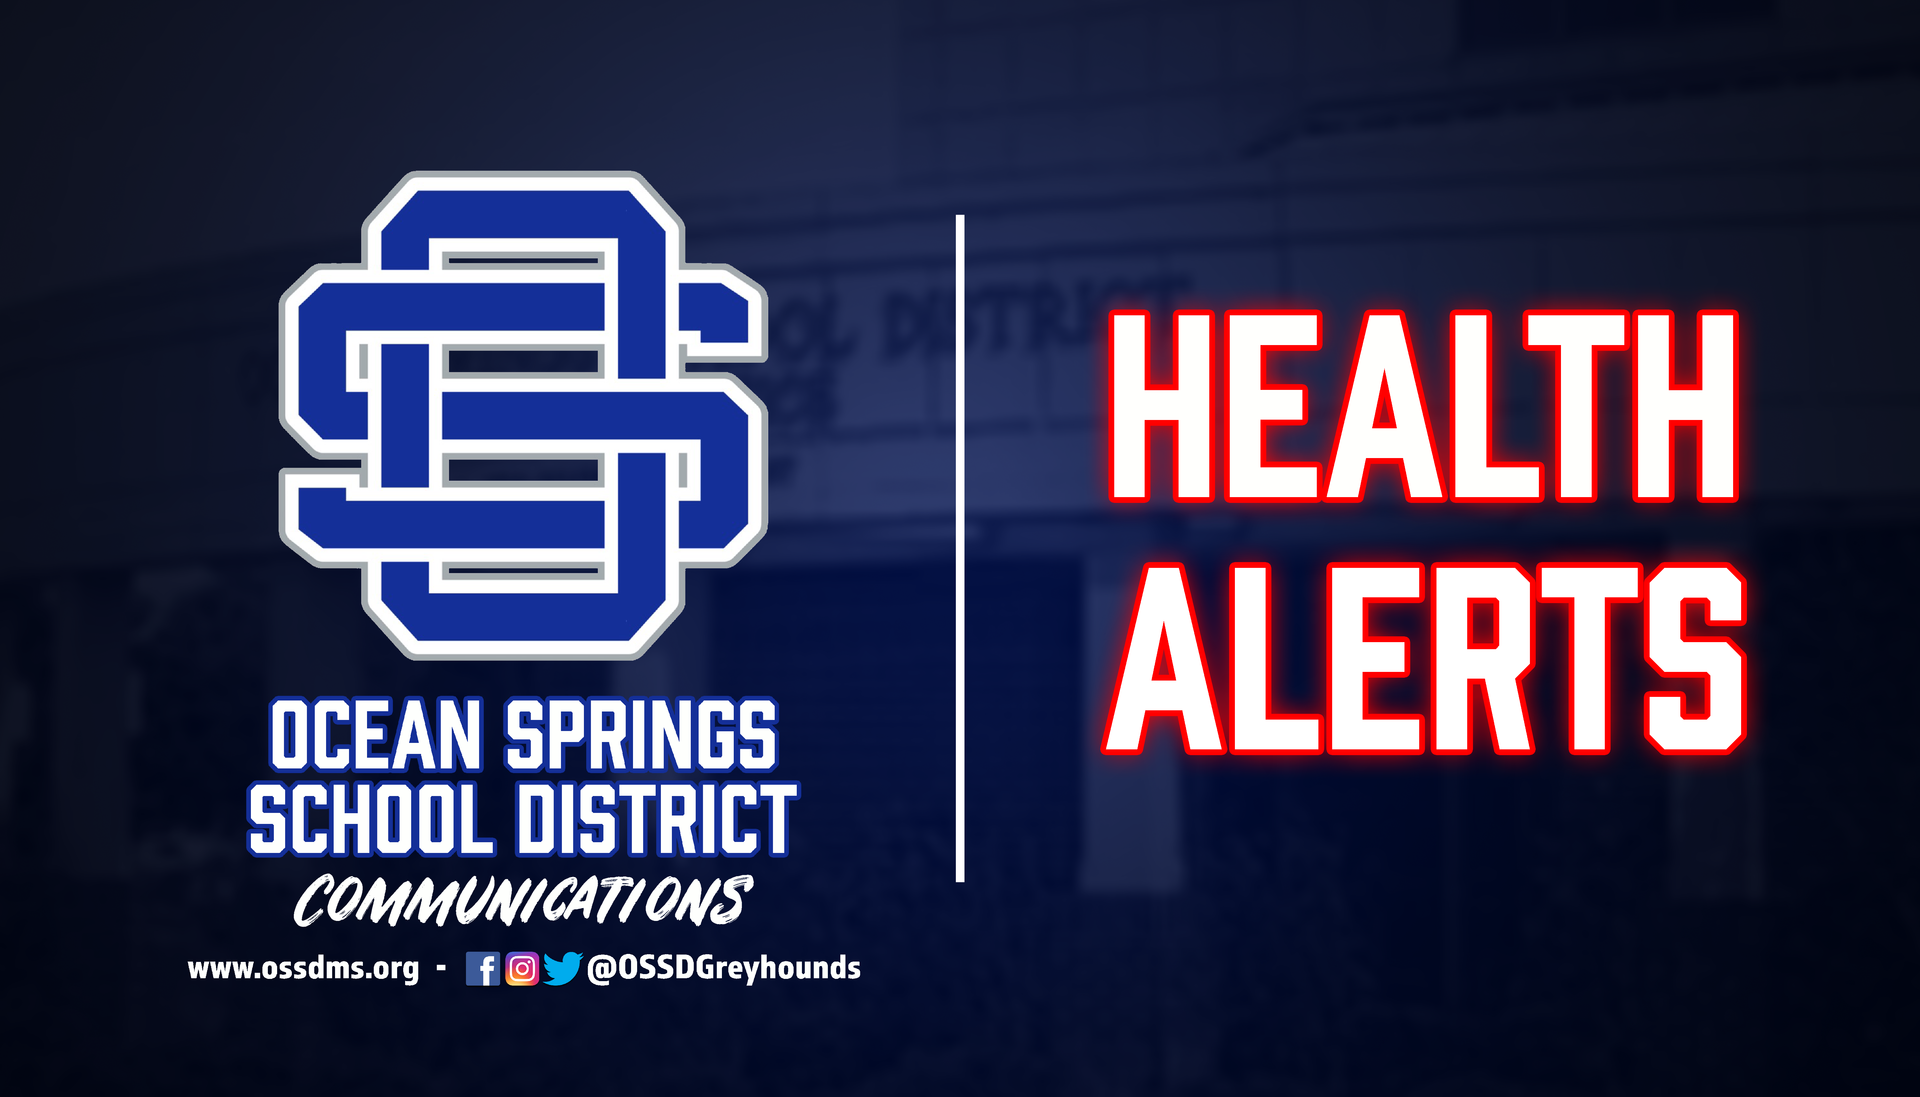 OSSD HEALTH ALERTS